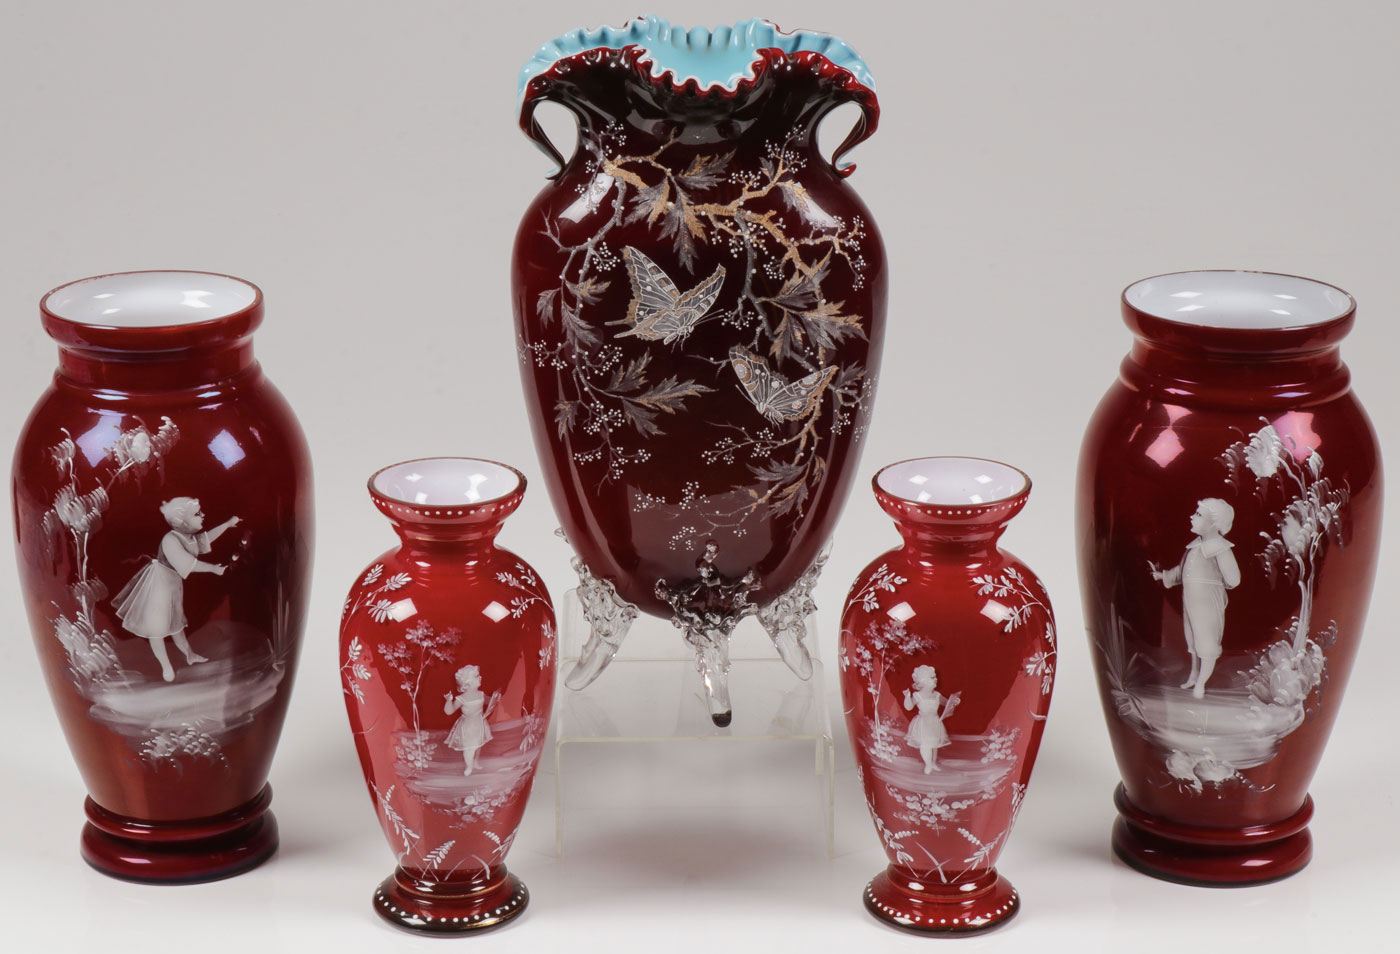 Lot 10 - MARY GREGORY CASED GLASS VASES, C. 1890